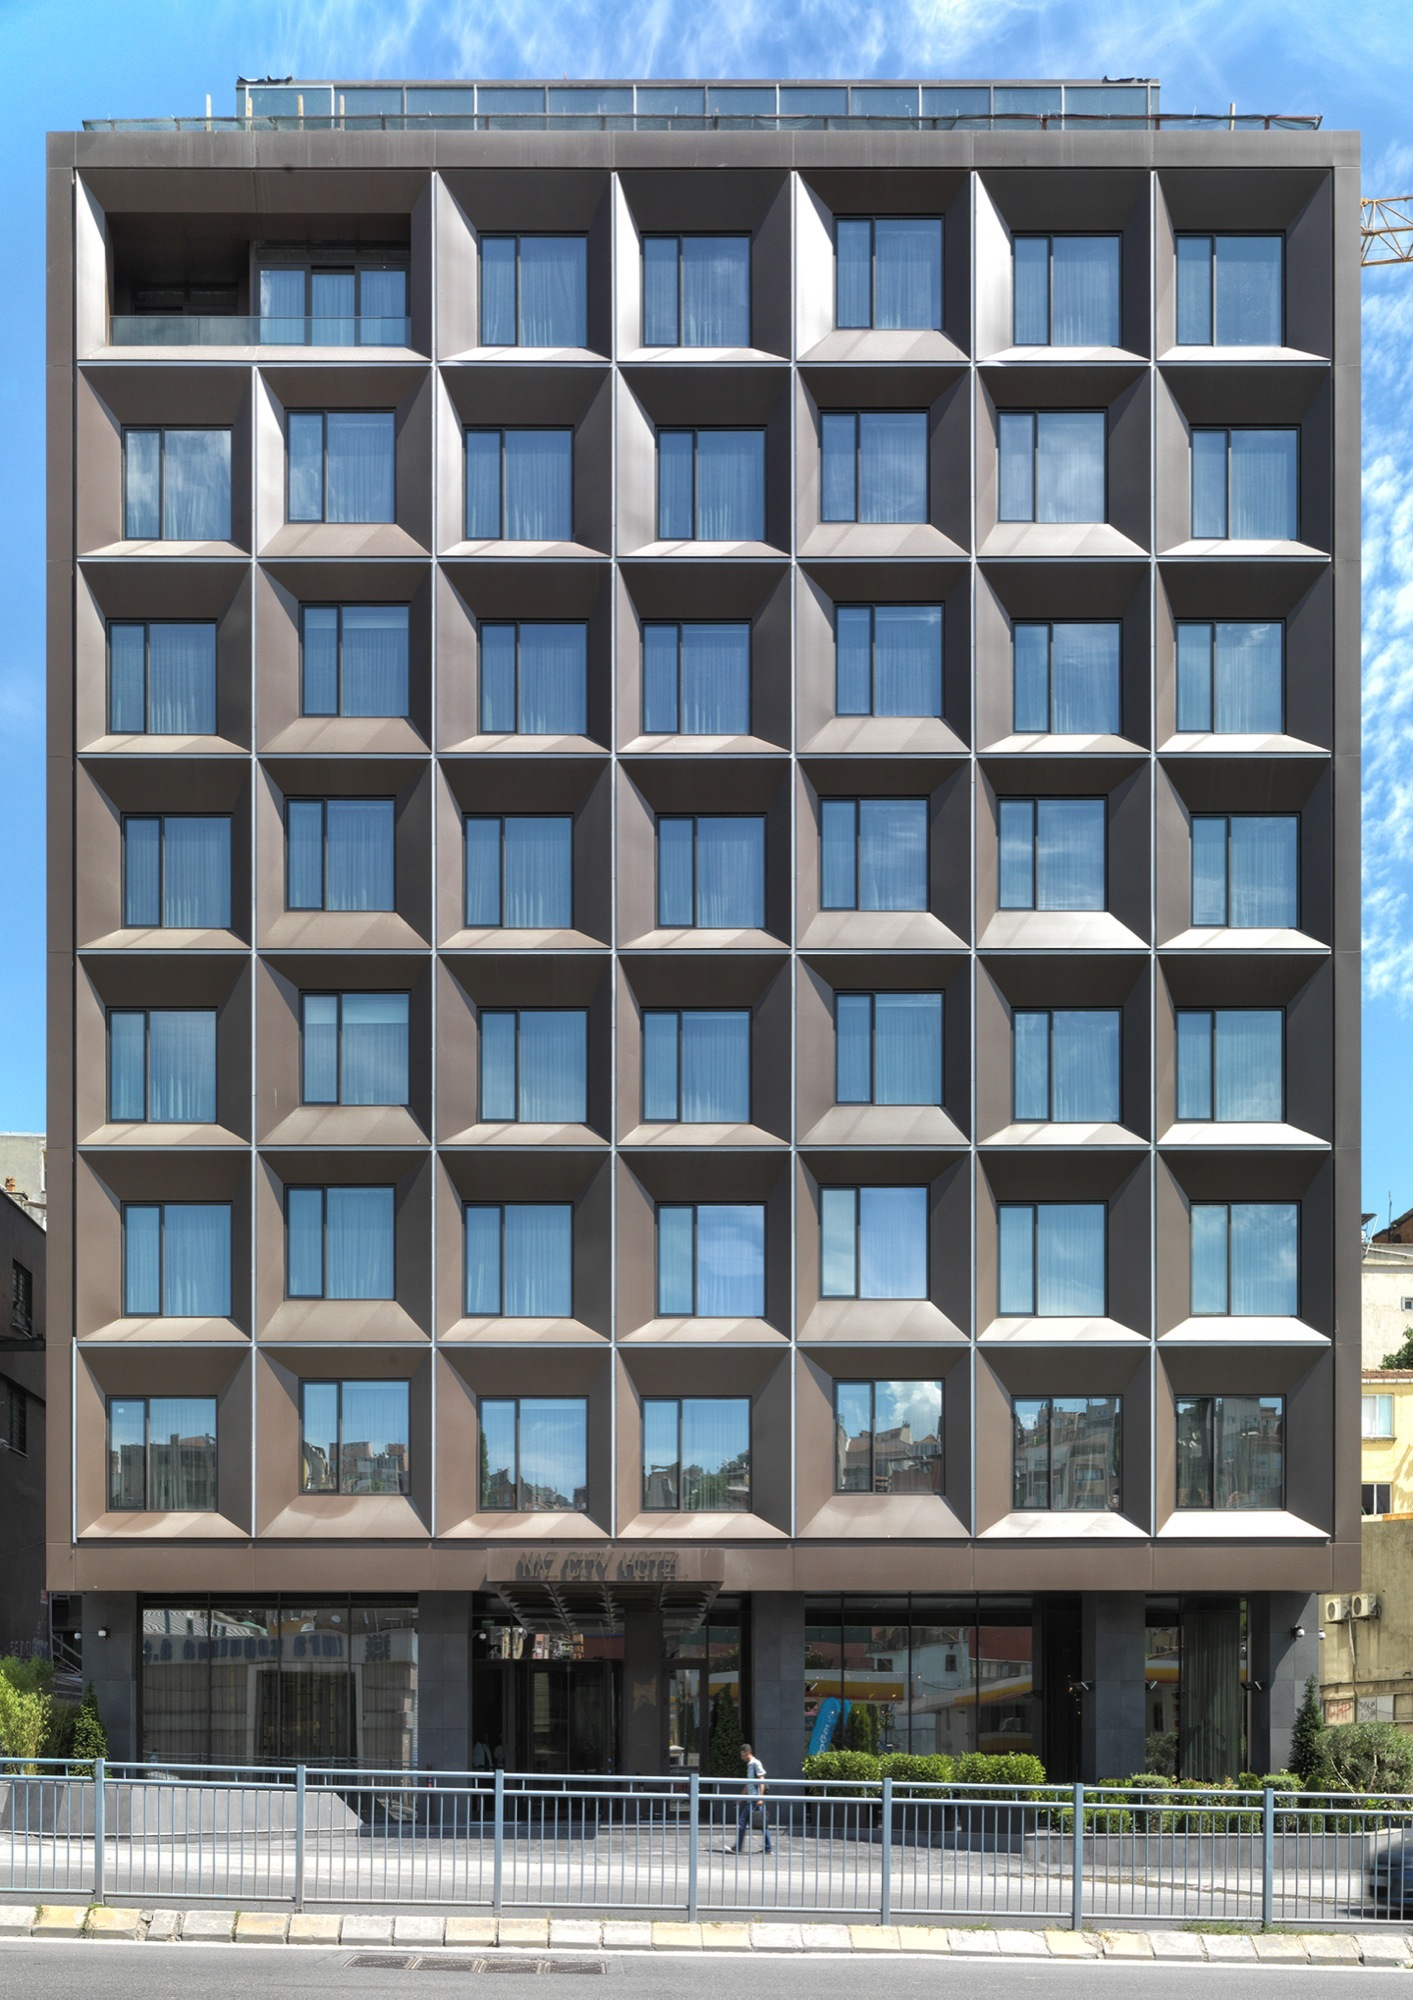 Gallery of naz city hotel taksim metex design group 26 for Design hotel group